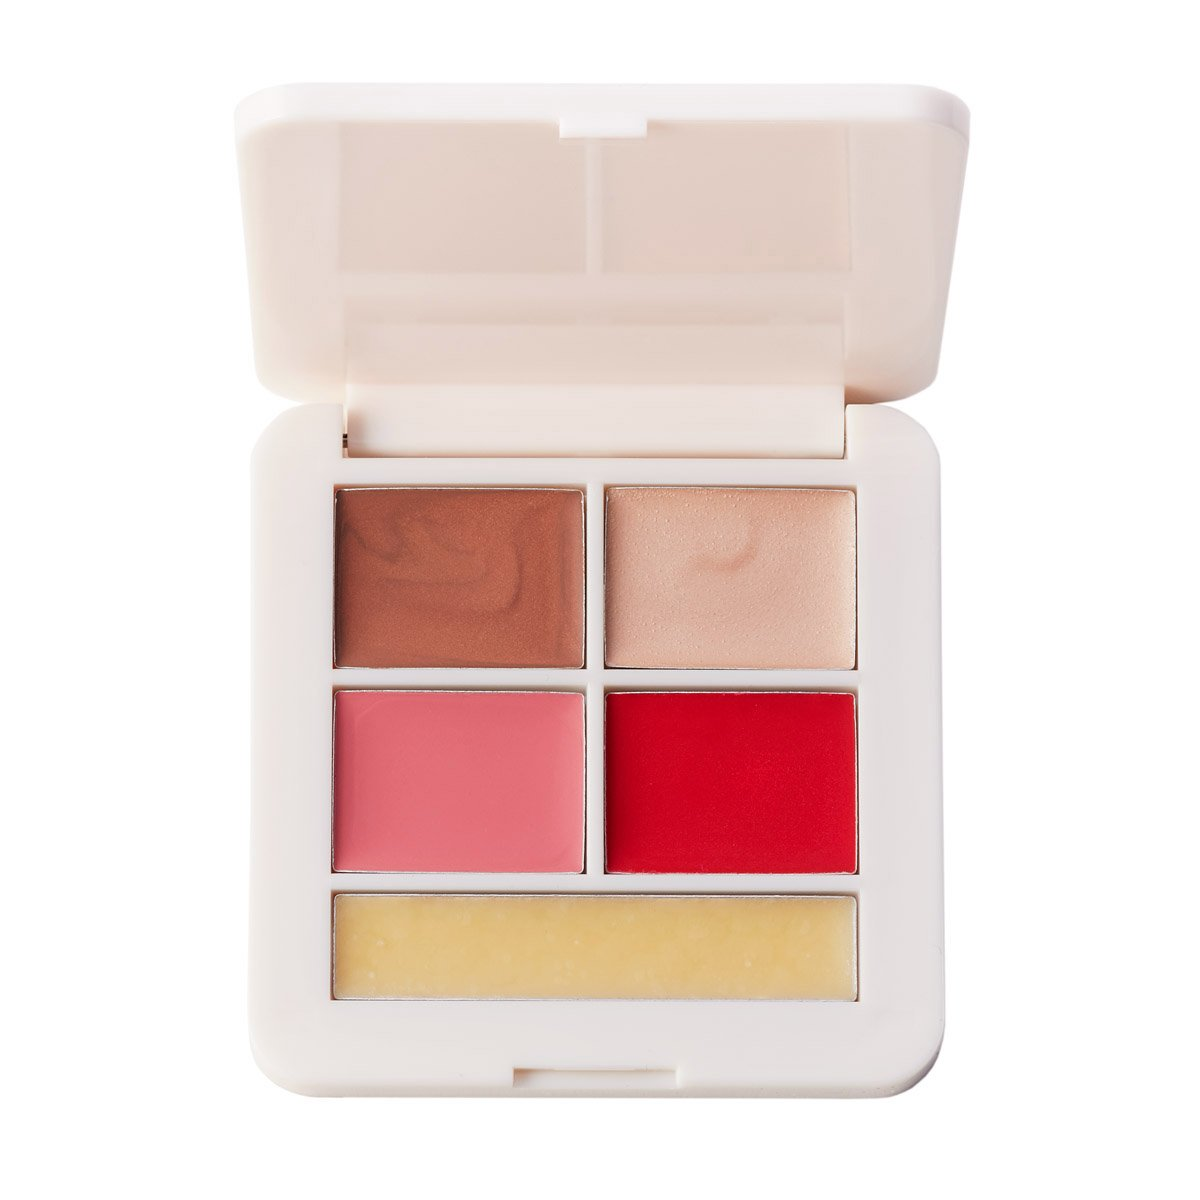 RMS Beauty Signature Set (Pop). Organic Makeup Palette for Natural Skincare. by RMS Beauty